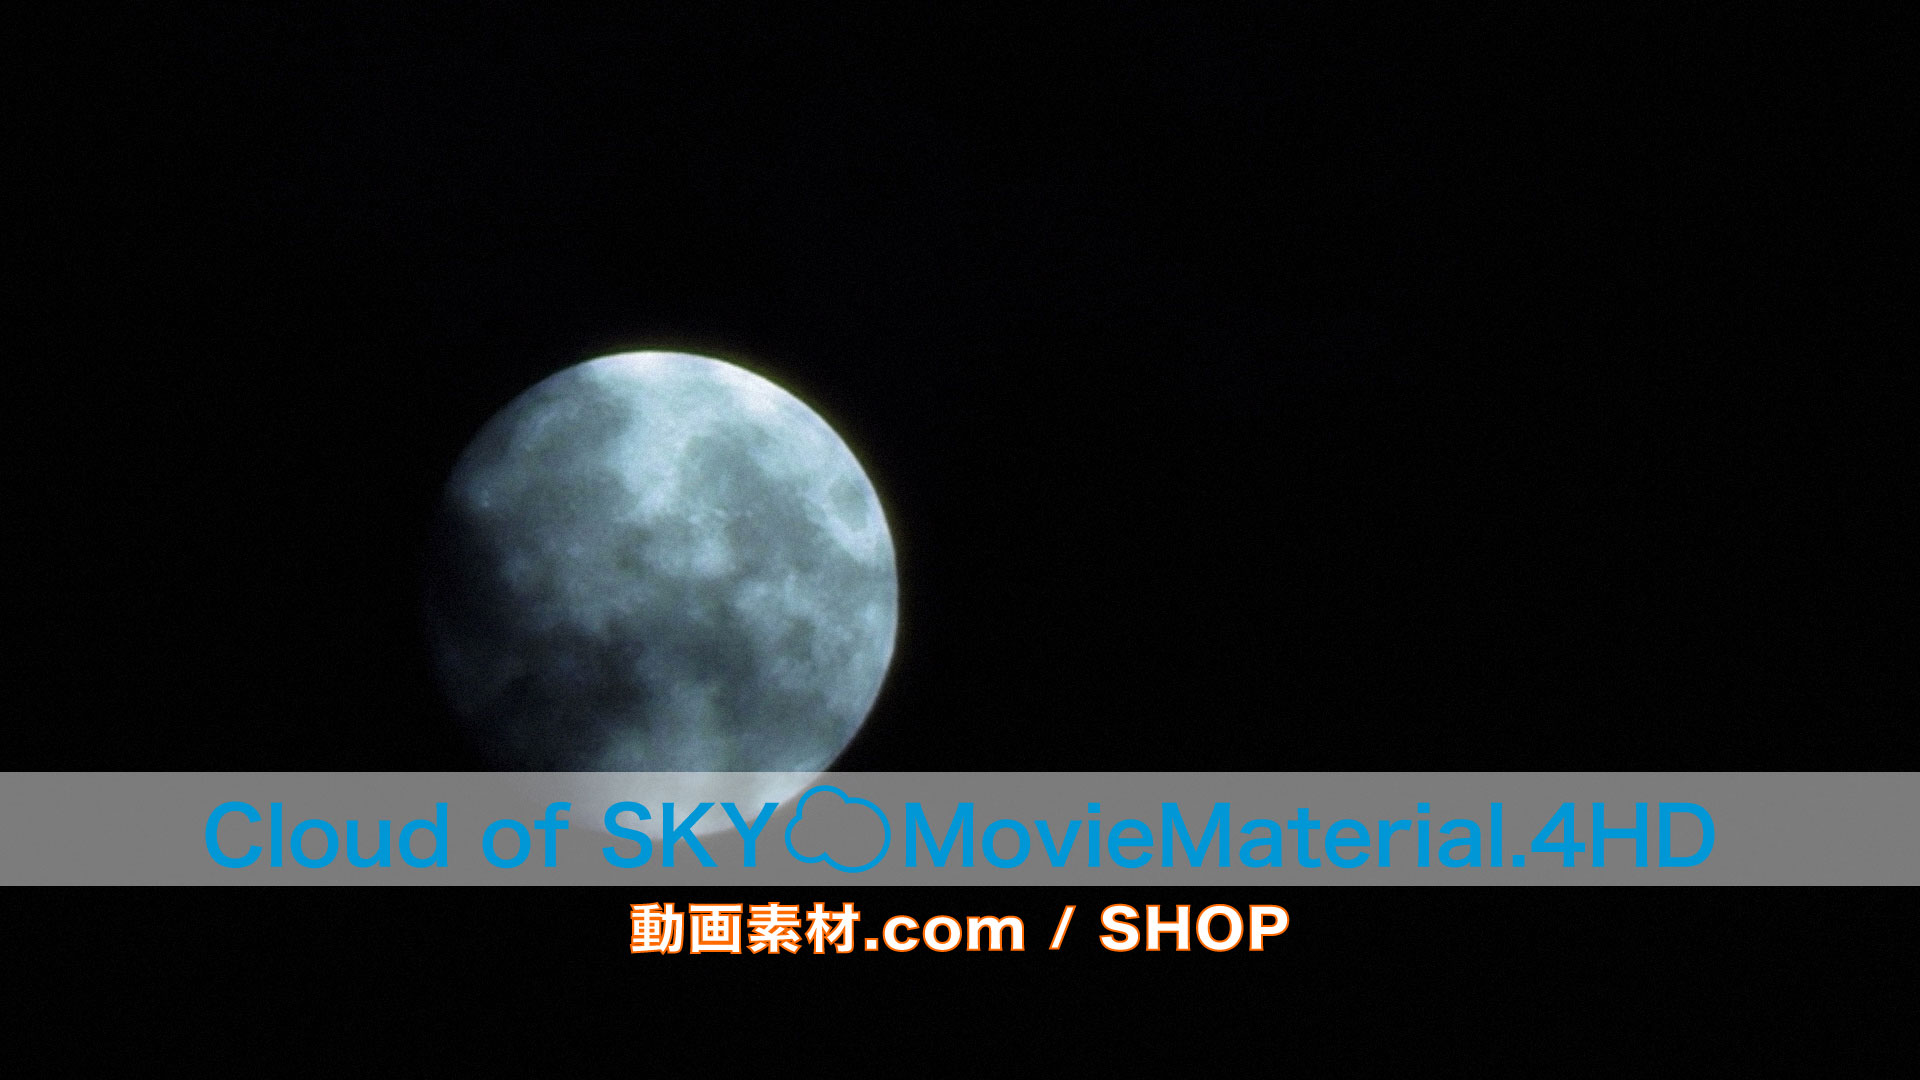 【Cloud of SKY MovieMaterial.4HD】ロイヤリティフリー フルハイビジョン空と雲の動画素材集 Image.11